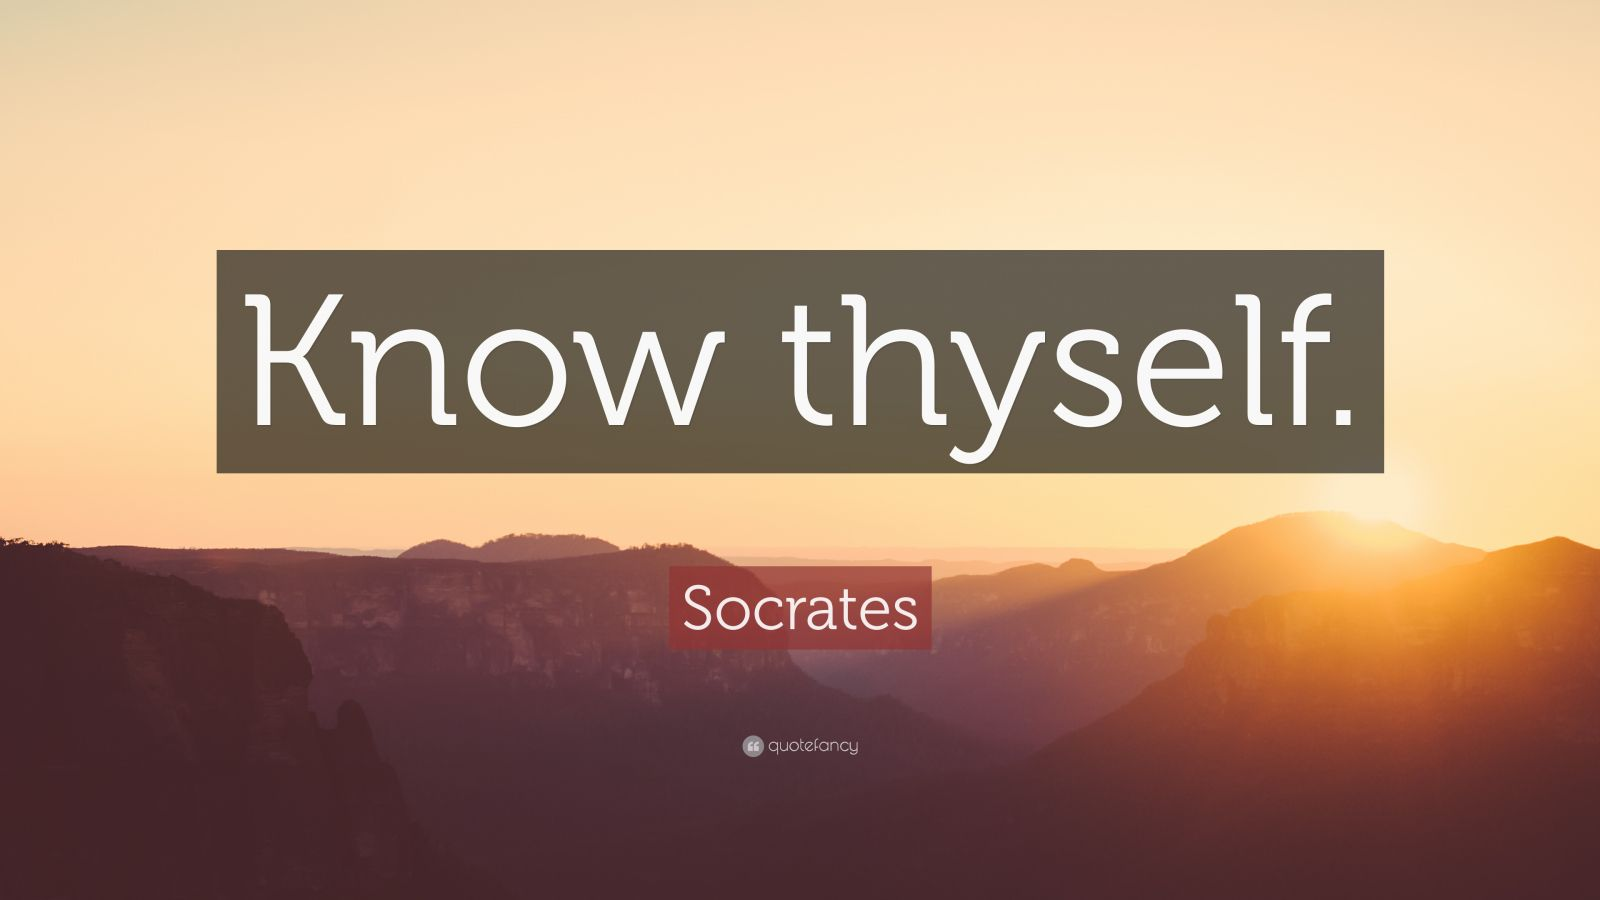 Dalai Lama Quotes Wallpapers Socrates Quote Know Thyself 32 Wallpapers Quotefancy